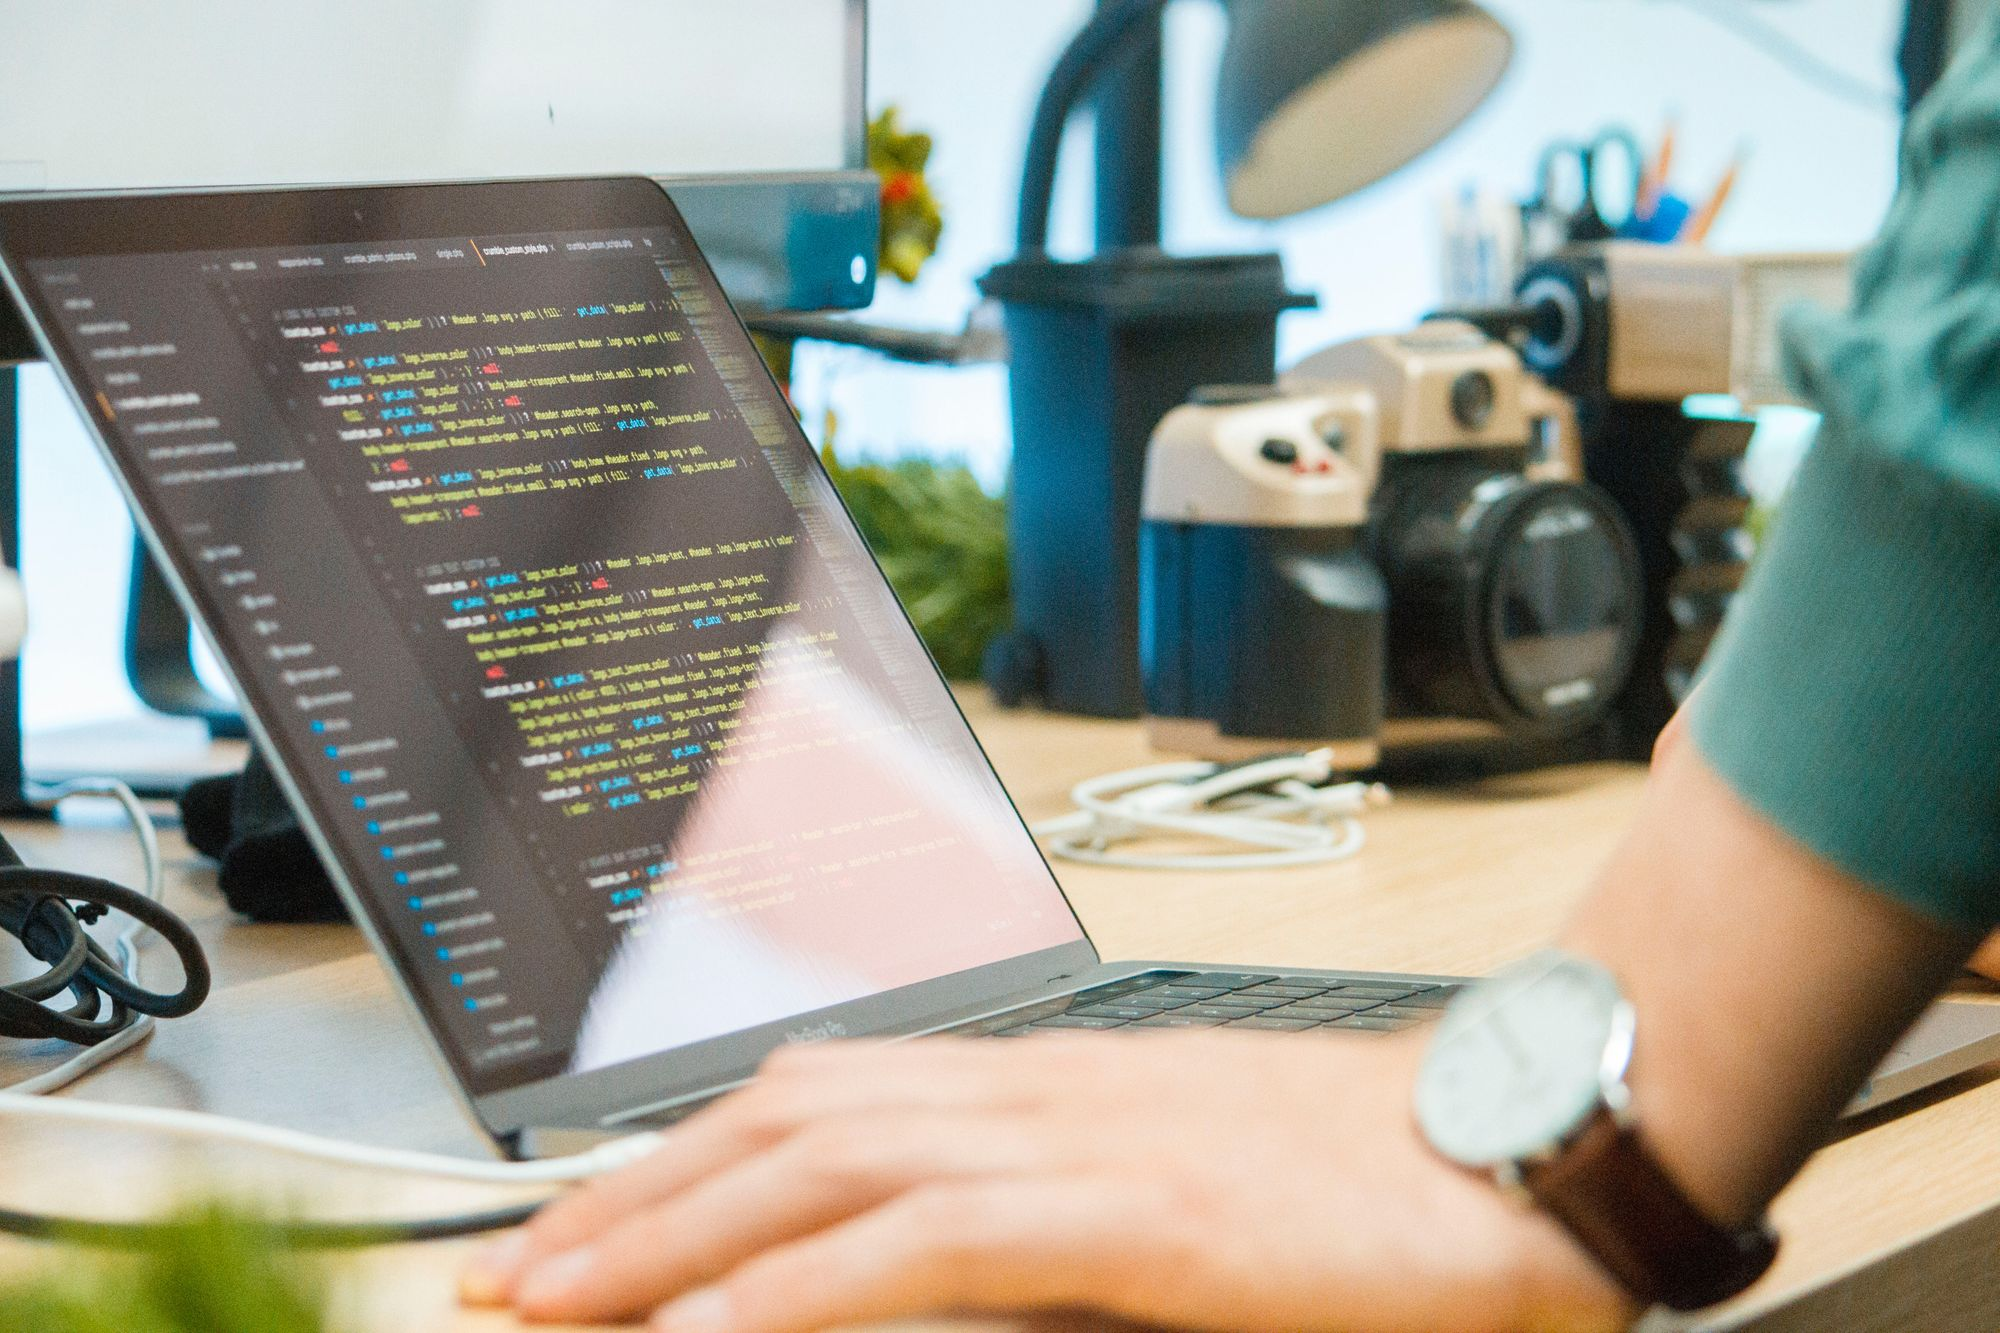 How To Setup an Effective Coding Test (a Guide for Hiring Managers) image